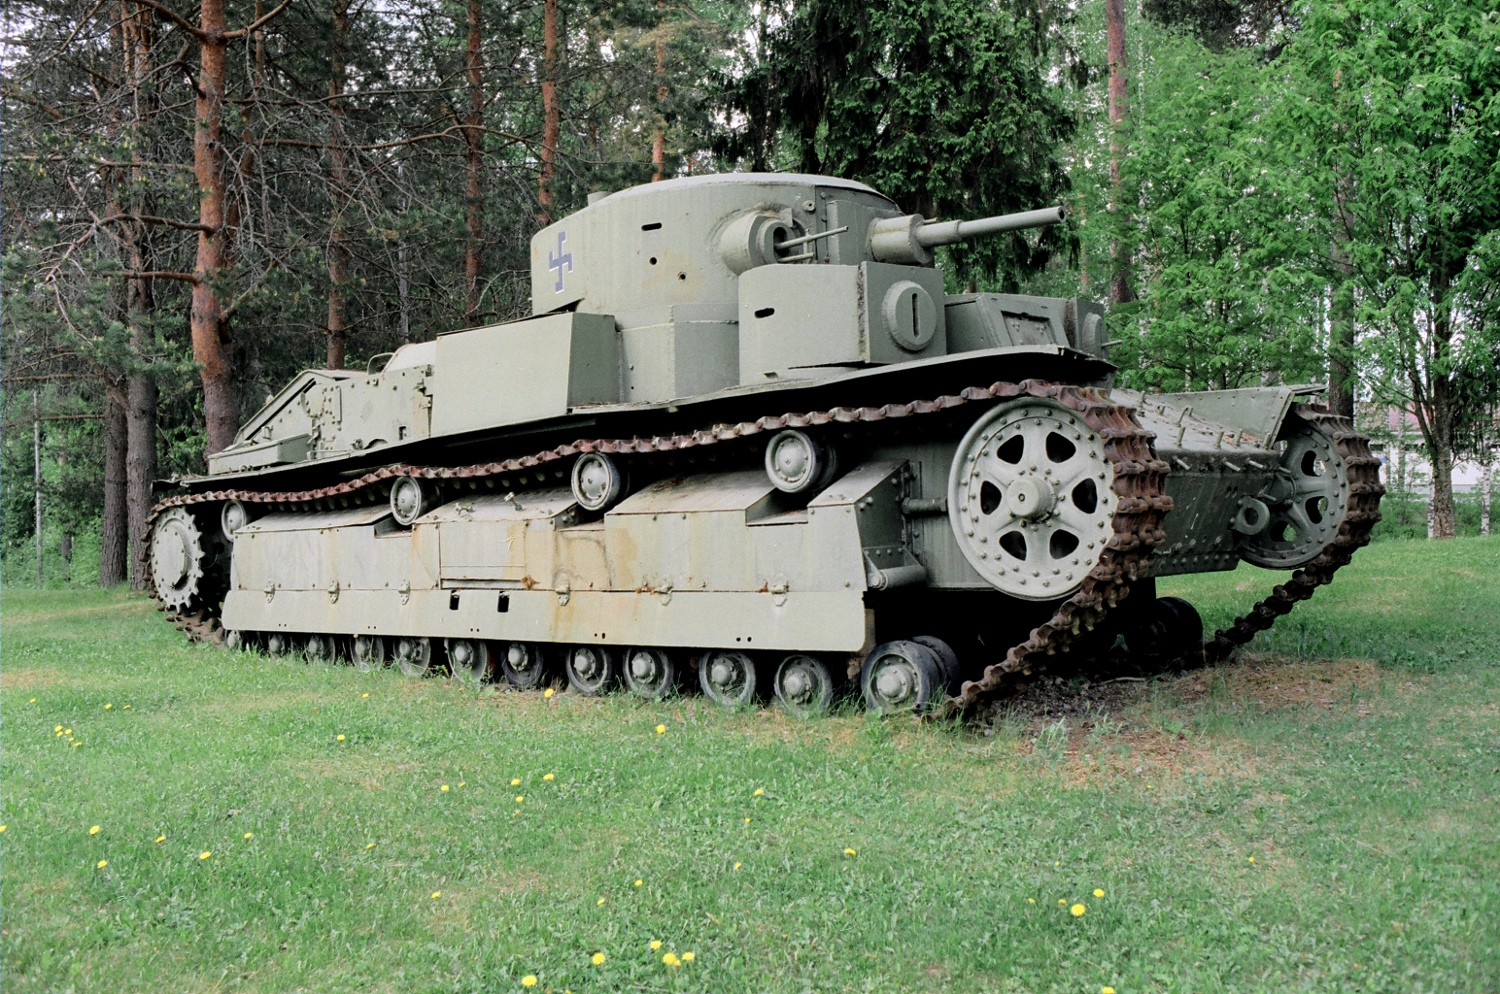 http://upload.wikimedia.org/wikipedia/commons/f/f5/T-28_tank_in_Mikkeli_20130531_001.jpg